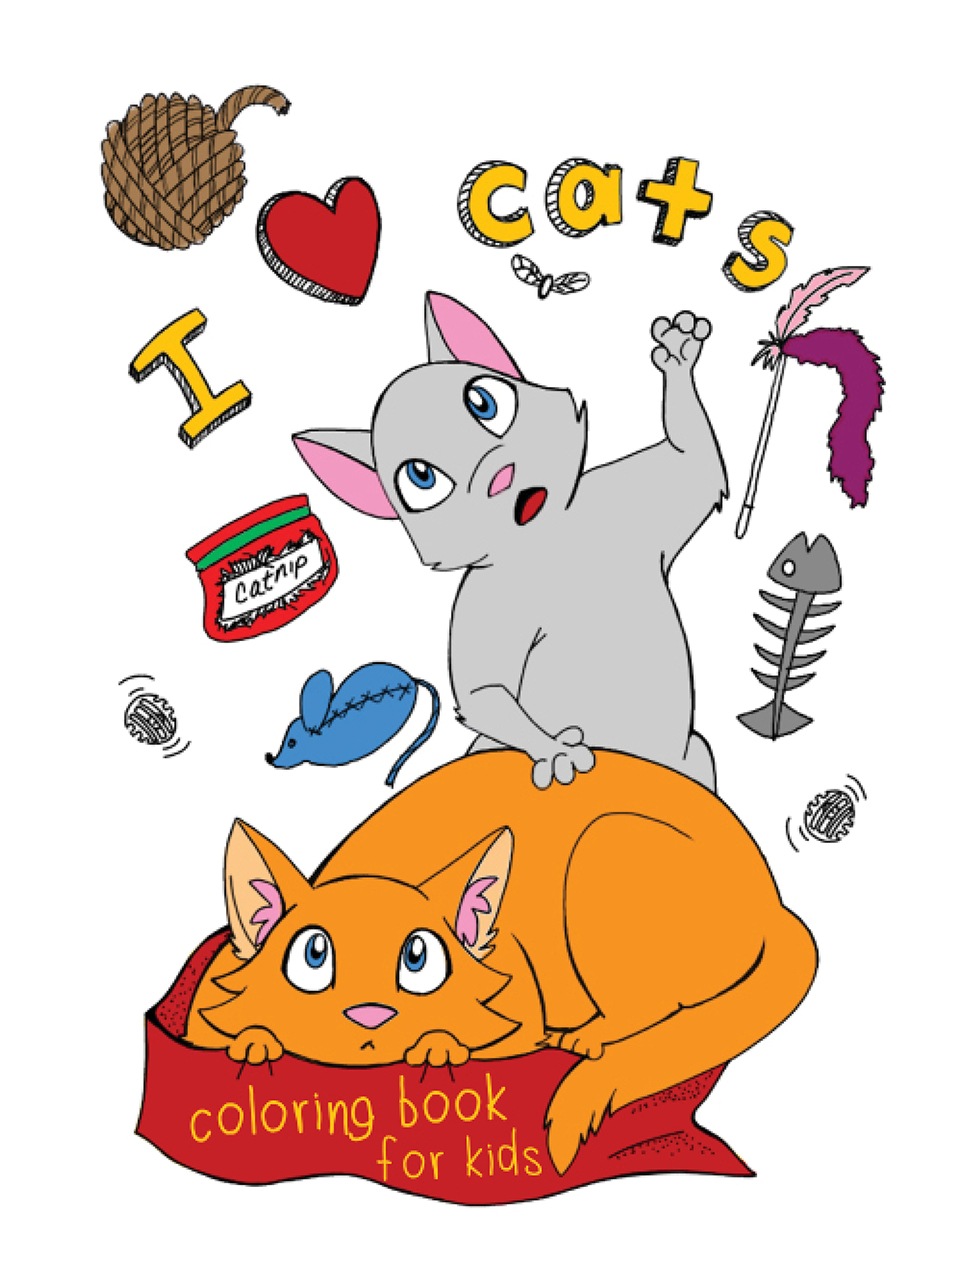 Happies - I Love Cats Coloring Book for Kids